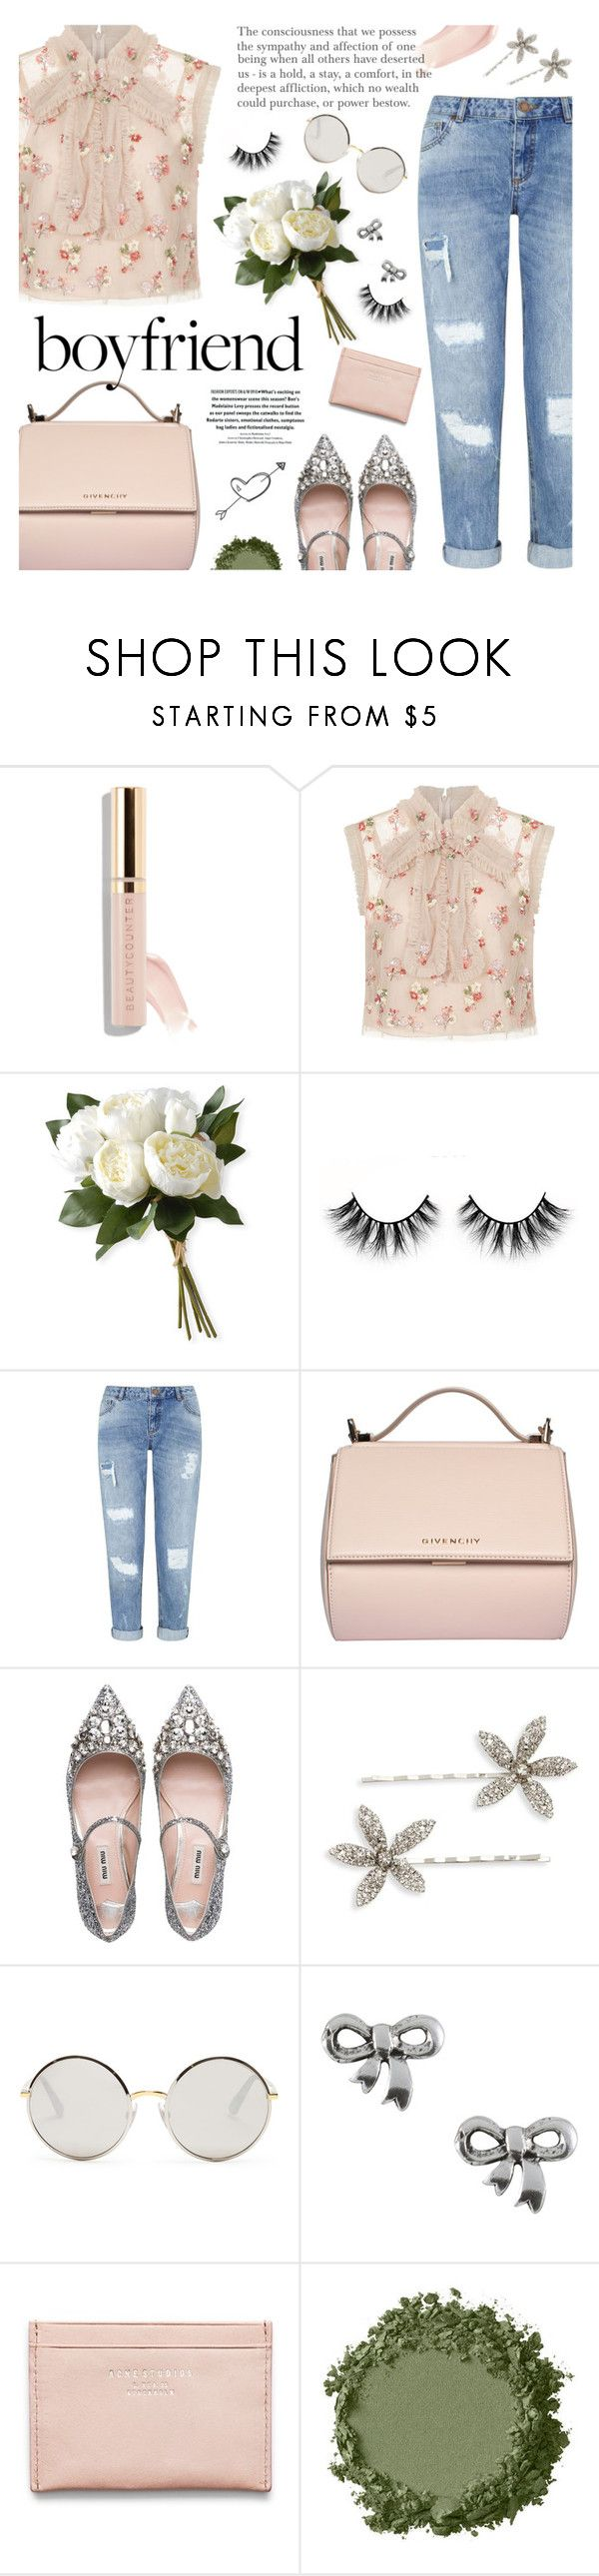 """""""borrowed from the boys: boyfriend jeans"""" by jesuisunlapin ❤ liked on Polyvore featuring Needle & Thread, National Tree Company, Miss Selfridge, Givenchy, Miu Miu, Jennifer Behr, Dolce&Gabbana, Jewel Exclusive, Acne Studios and croptop"""